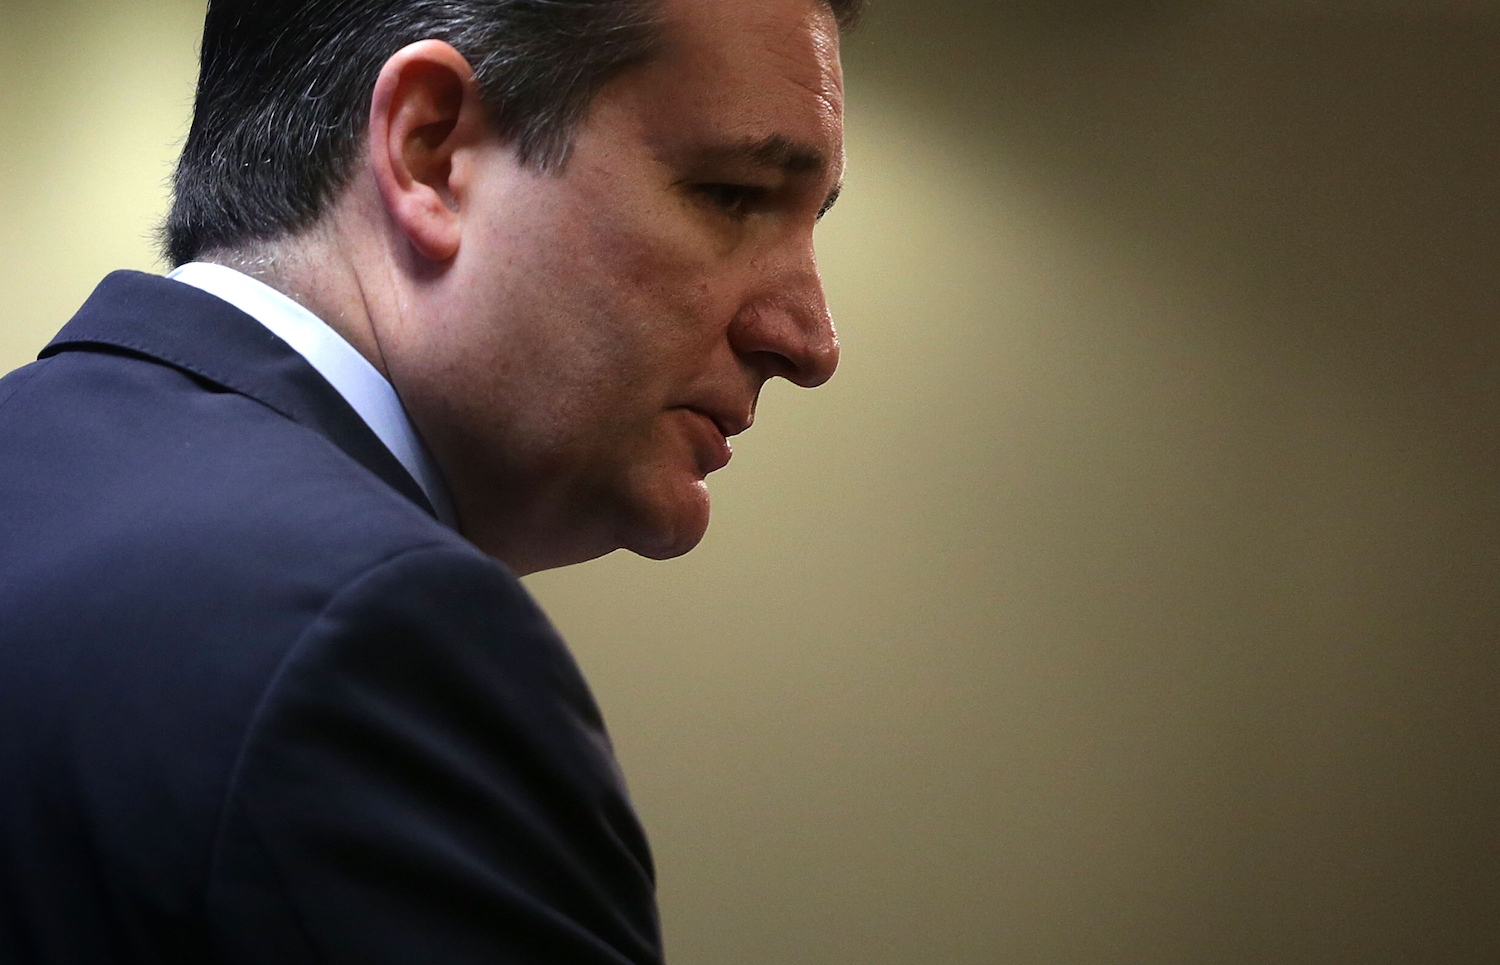 Ted Cruz failed in his presidential campaign.